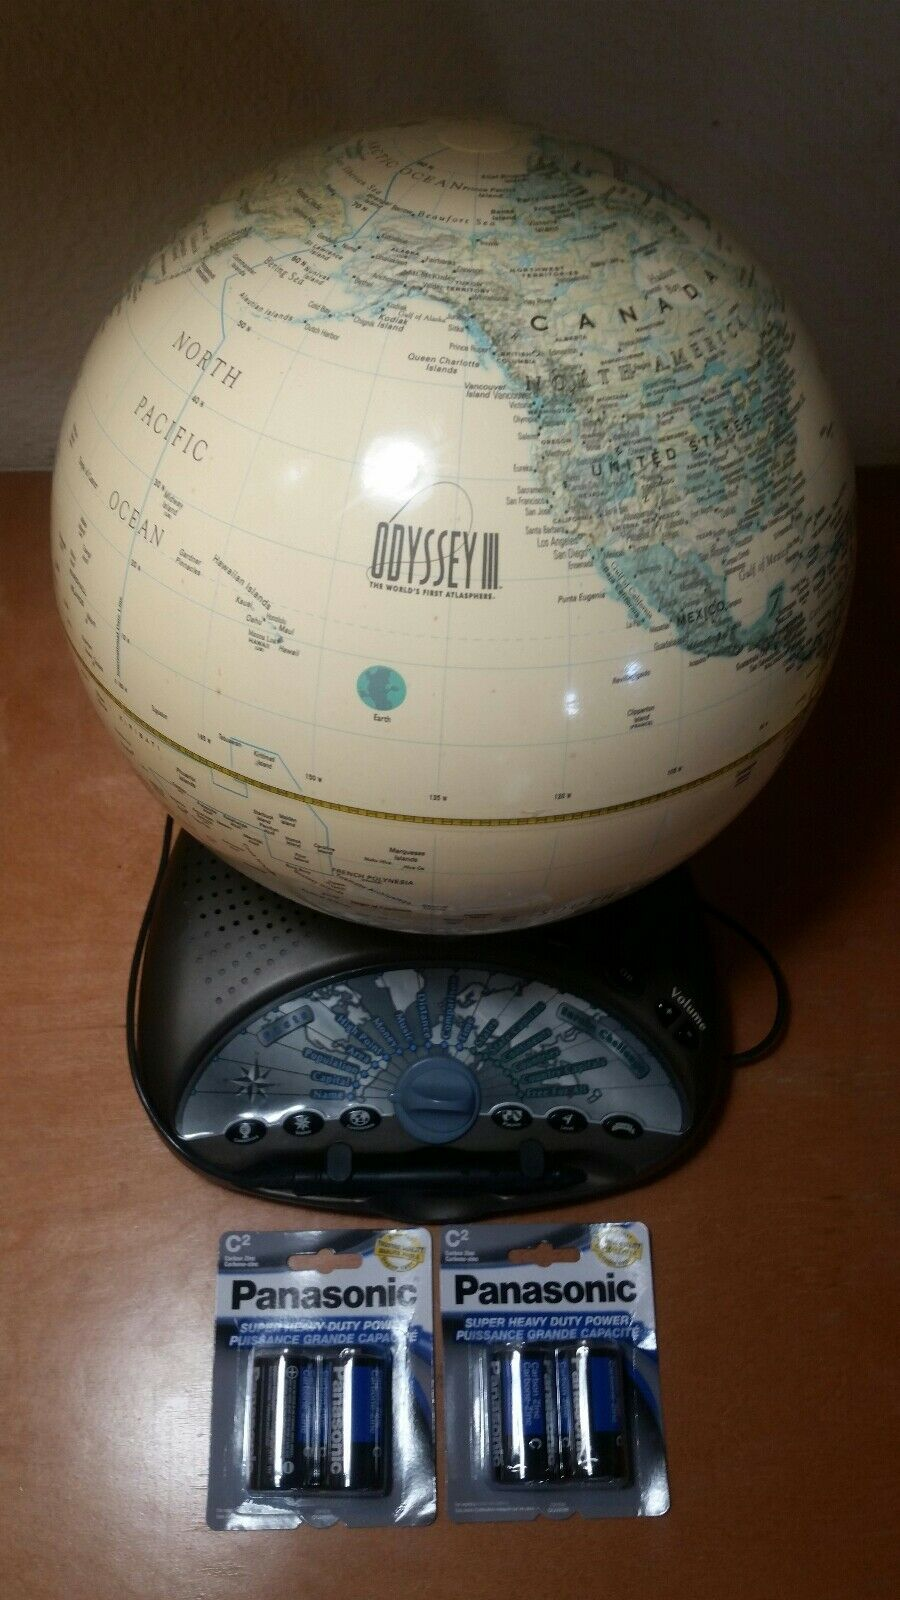 ODYSSEY III Leapfrog Interactive Educational Talking GLOBE (Eureka Challenge)